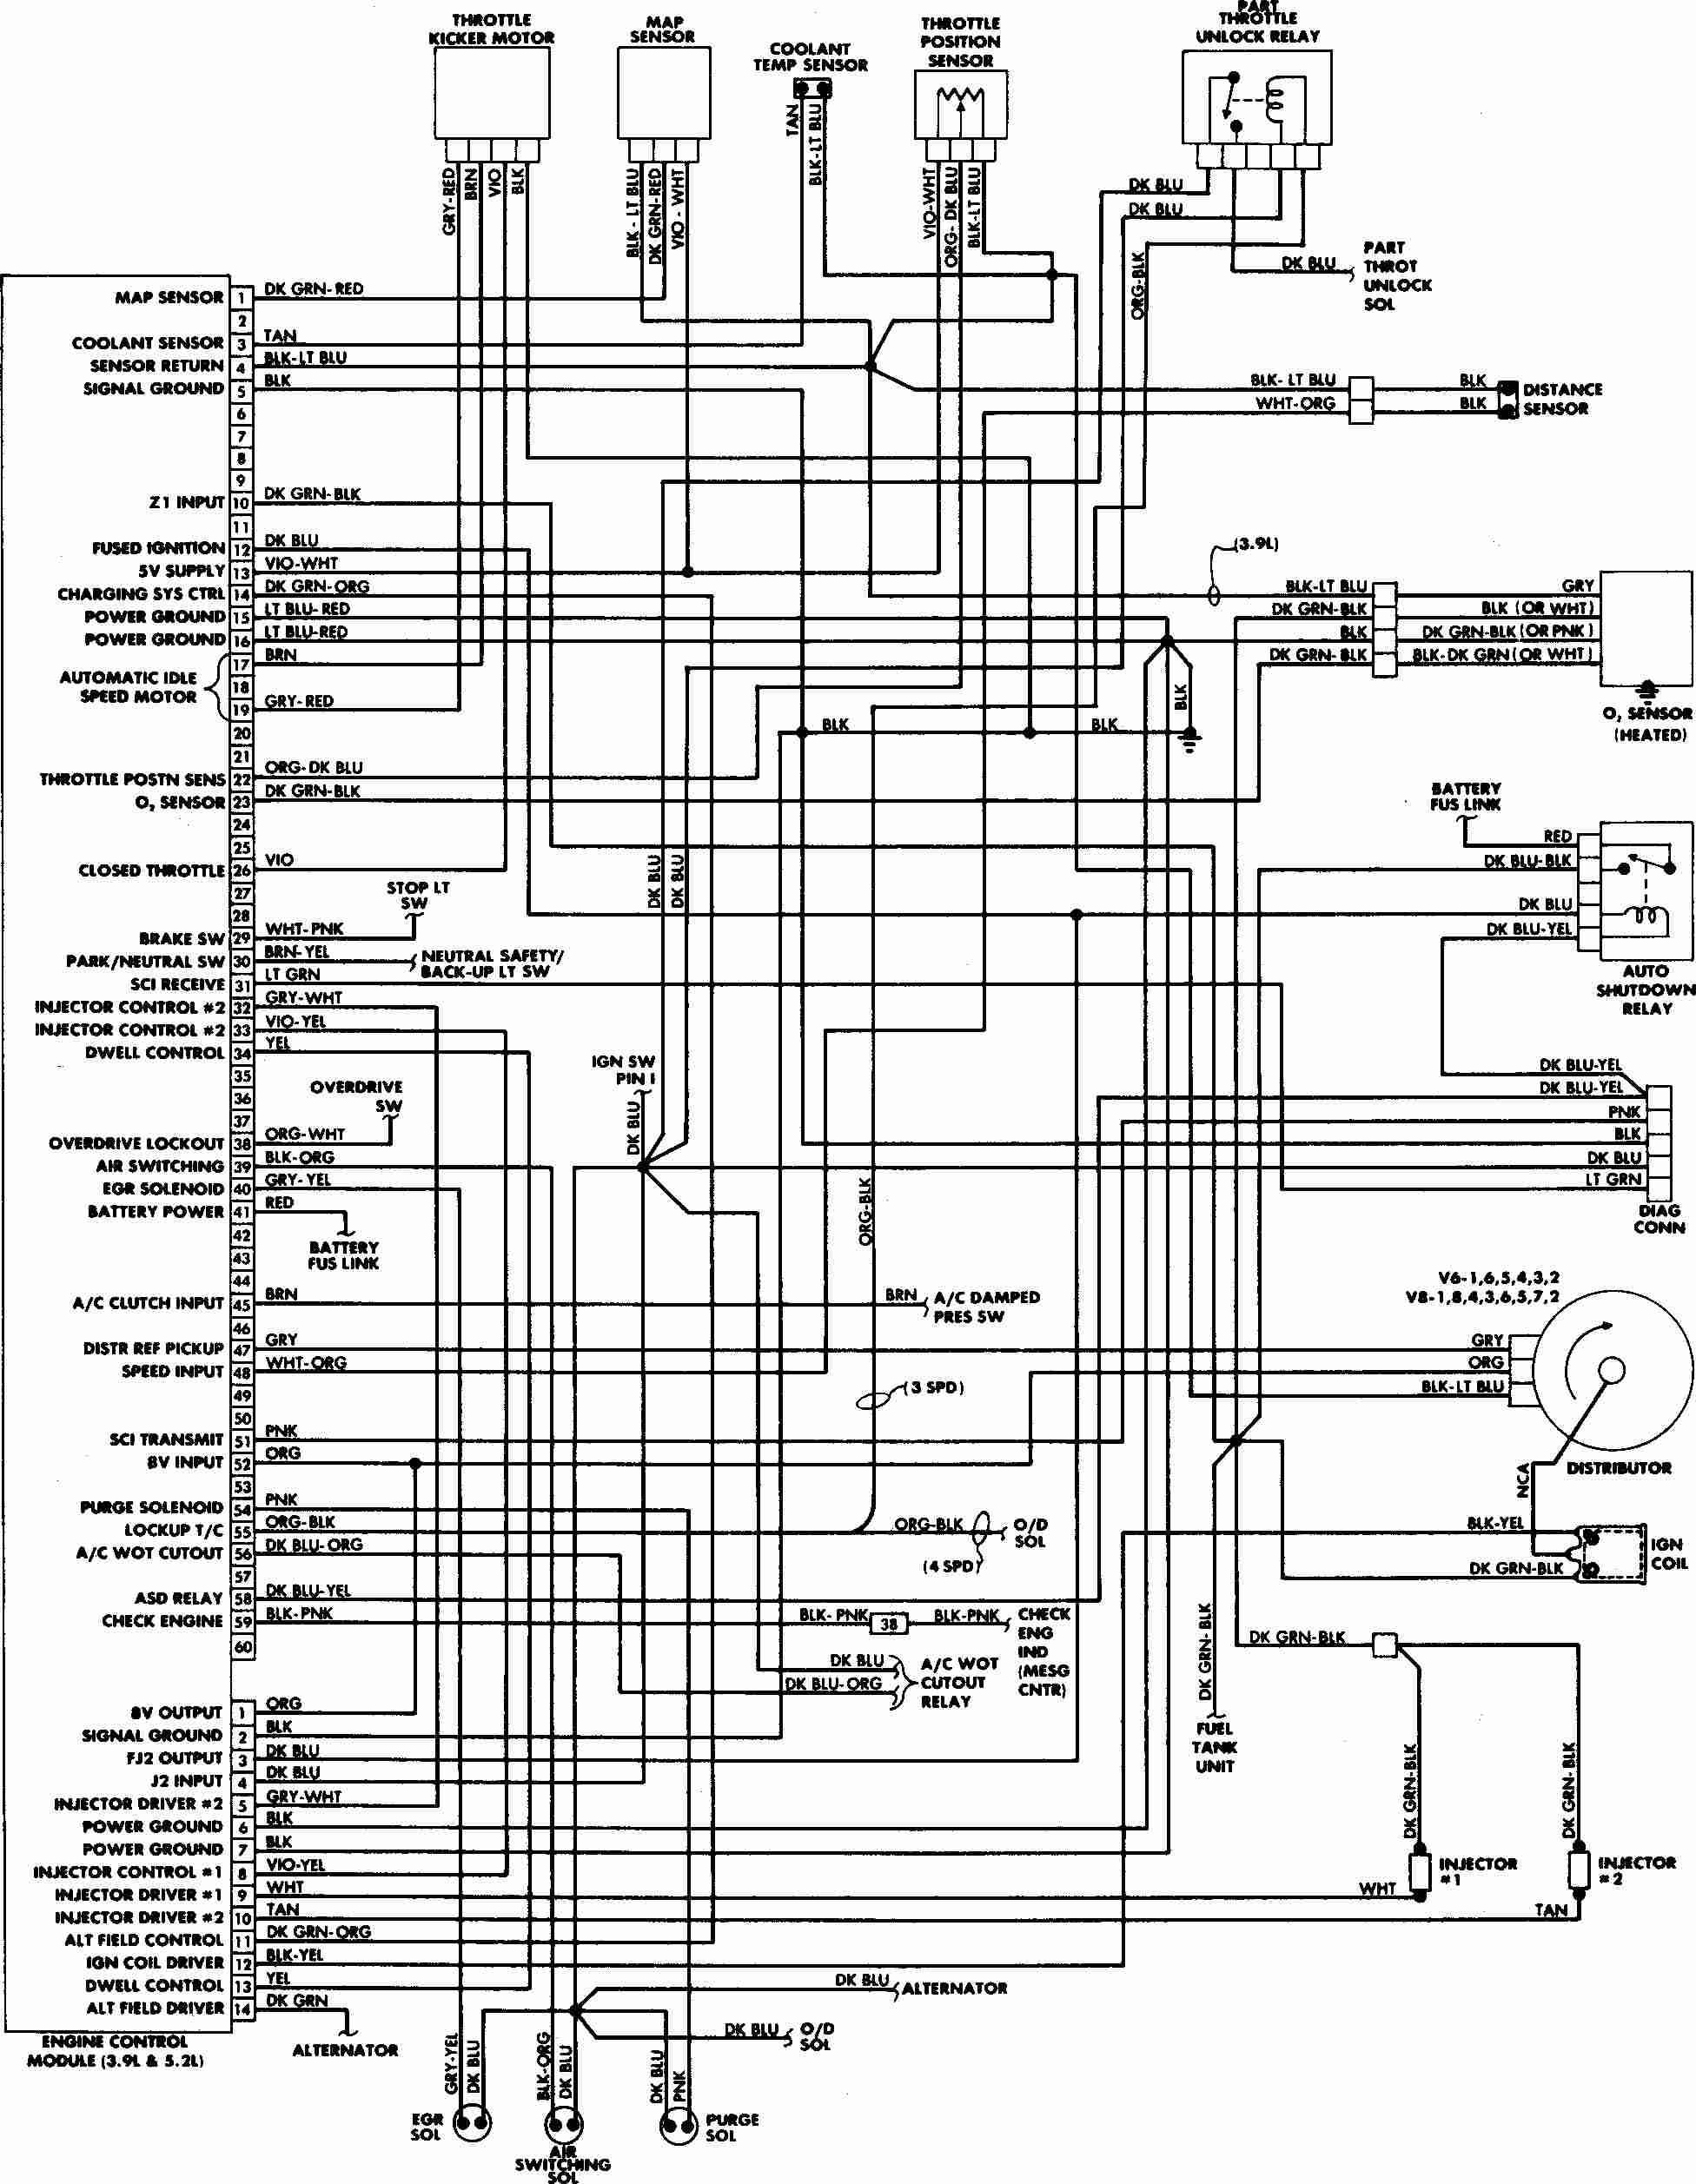 Wiring Diagram For Chevrolet Z71